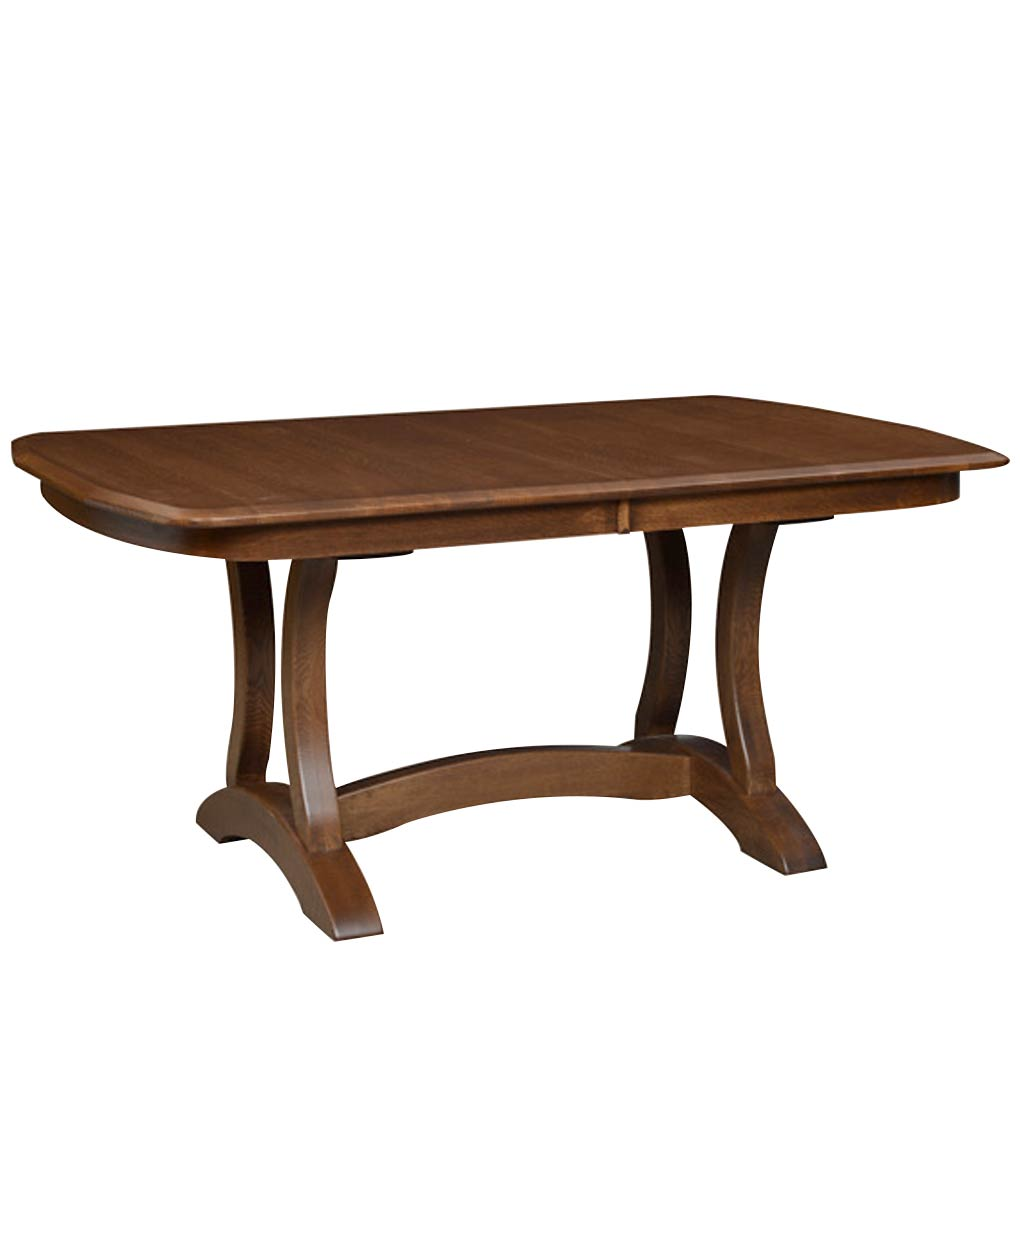 Richfield double pedestal table amish direct furniture for Dining room table 42 x 60